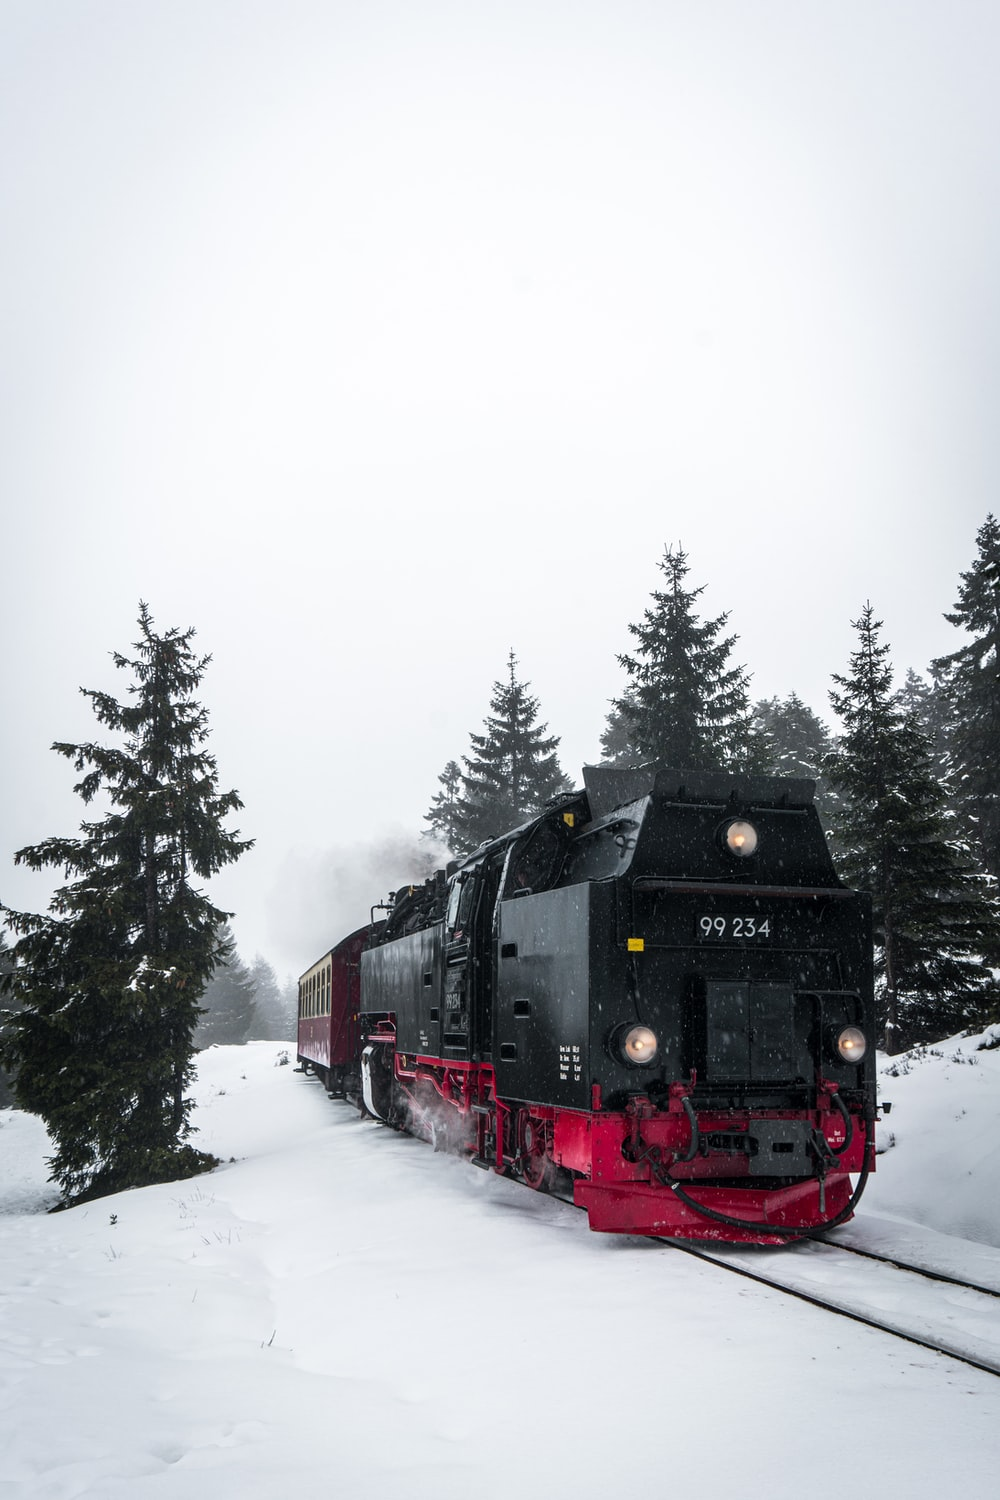 red and black train on snow covered ground during daytime